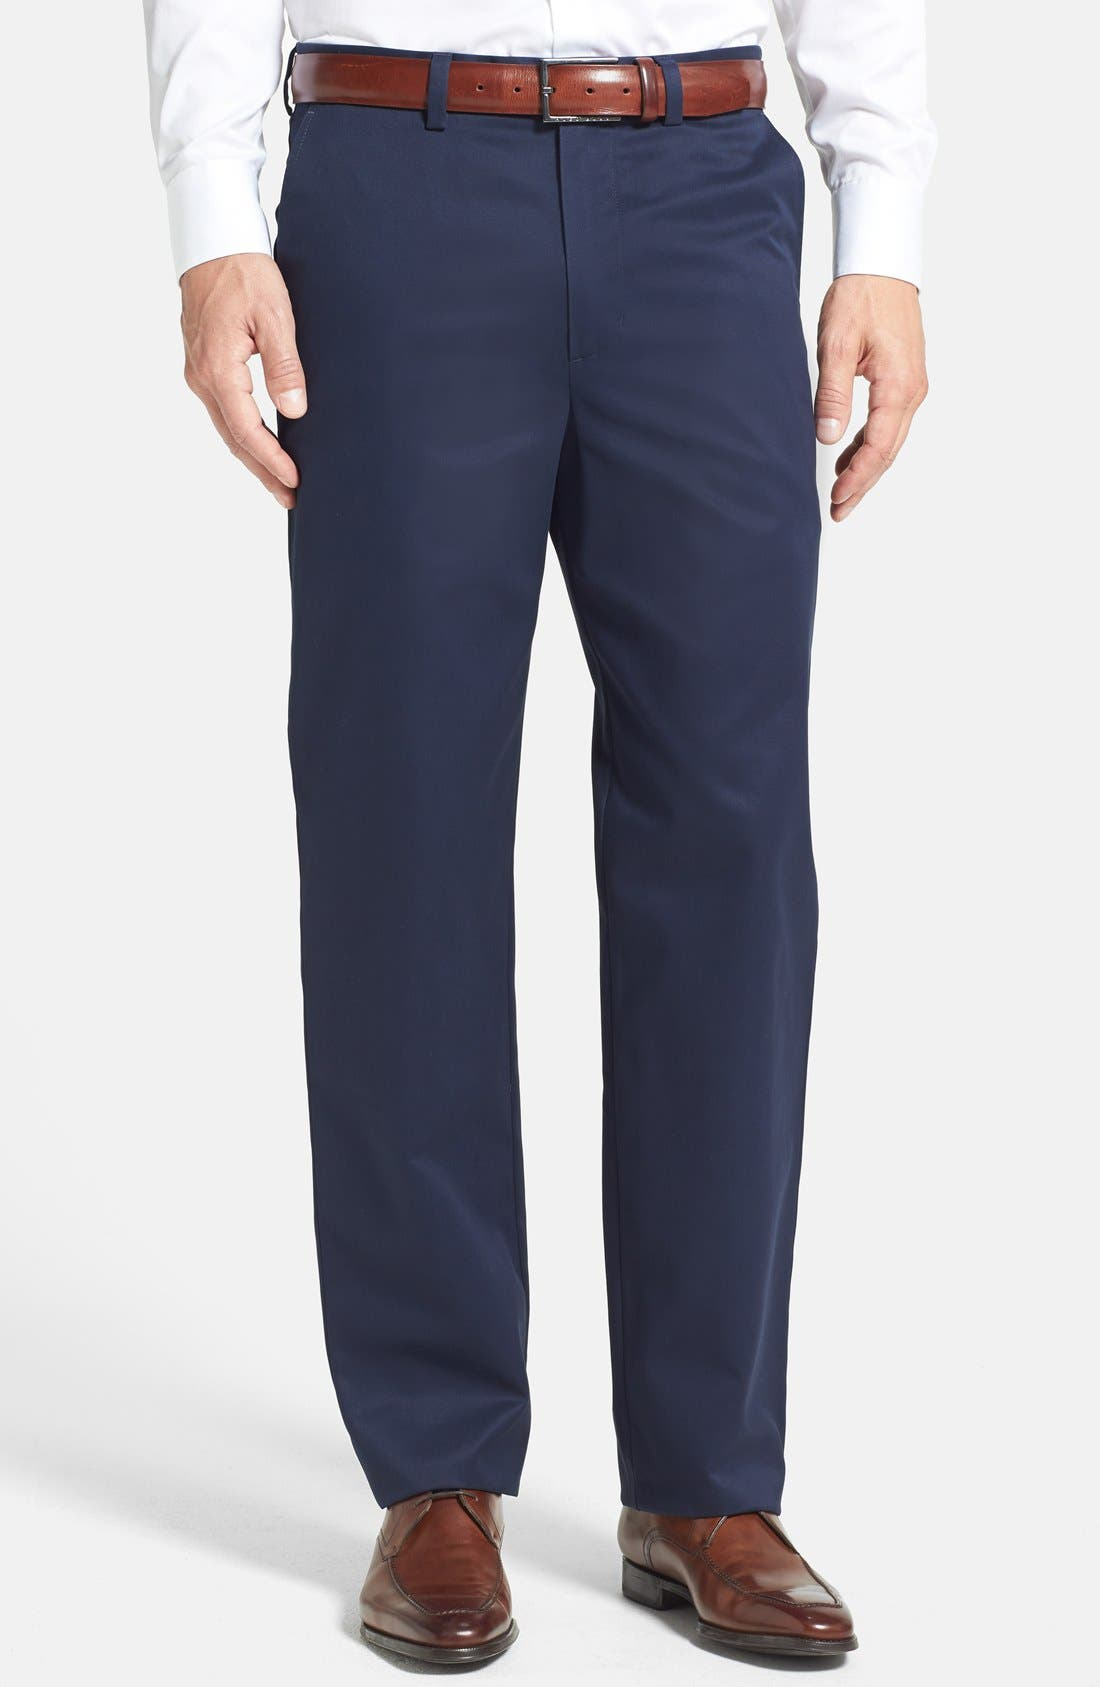 Nordstrom Men's Shop 'Classic' Smartcare™ Relaxed Fit Flat Front Cotton Pants (Online Only)